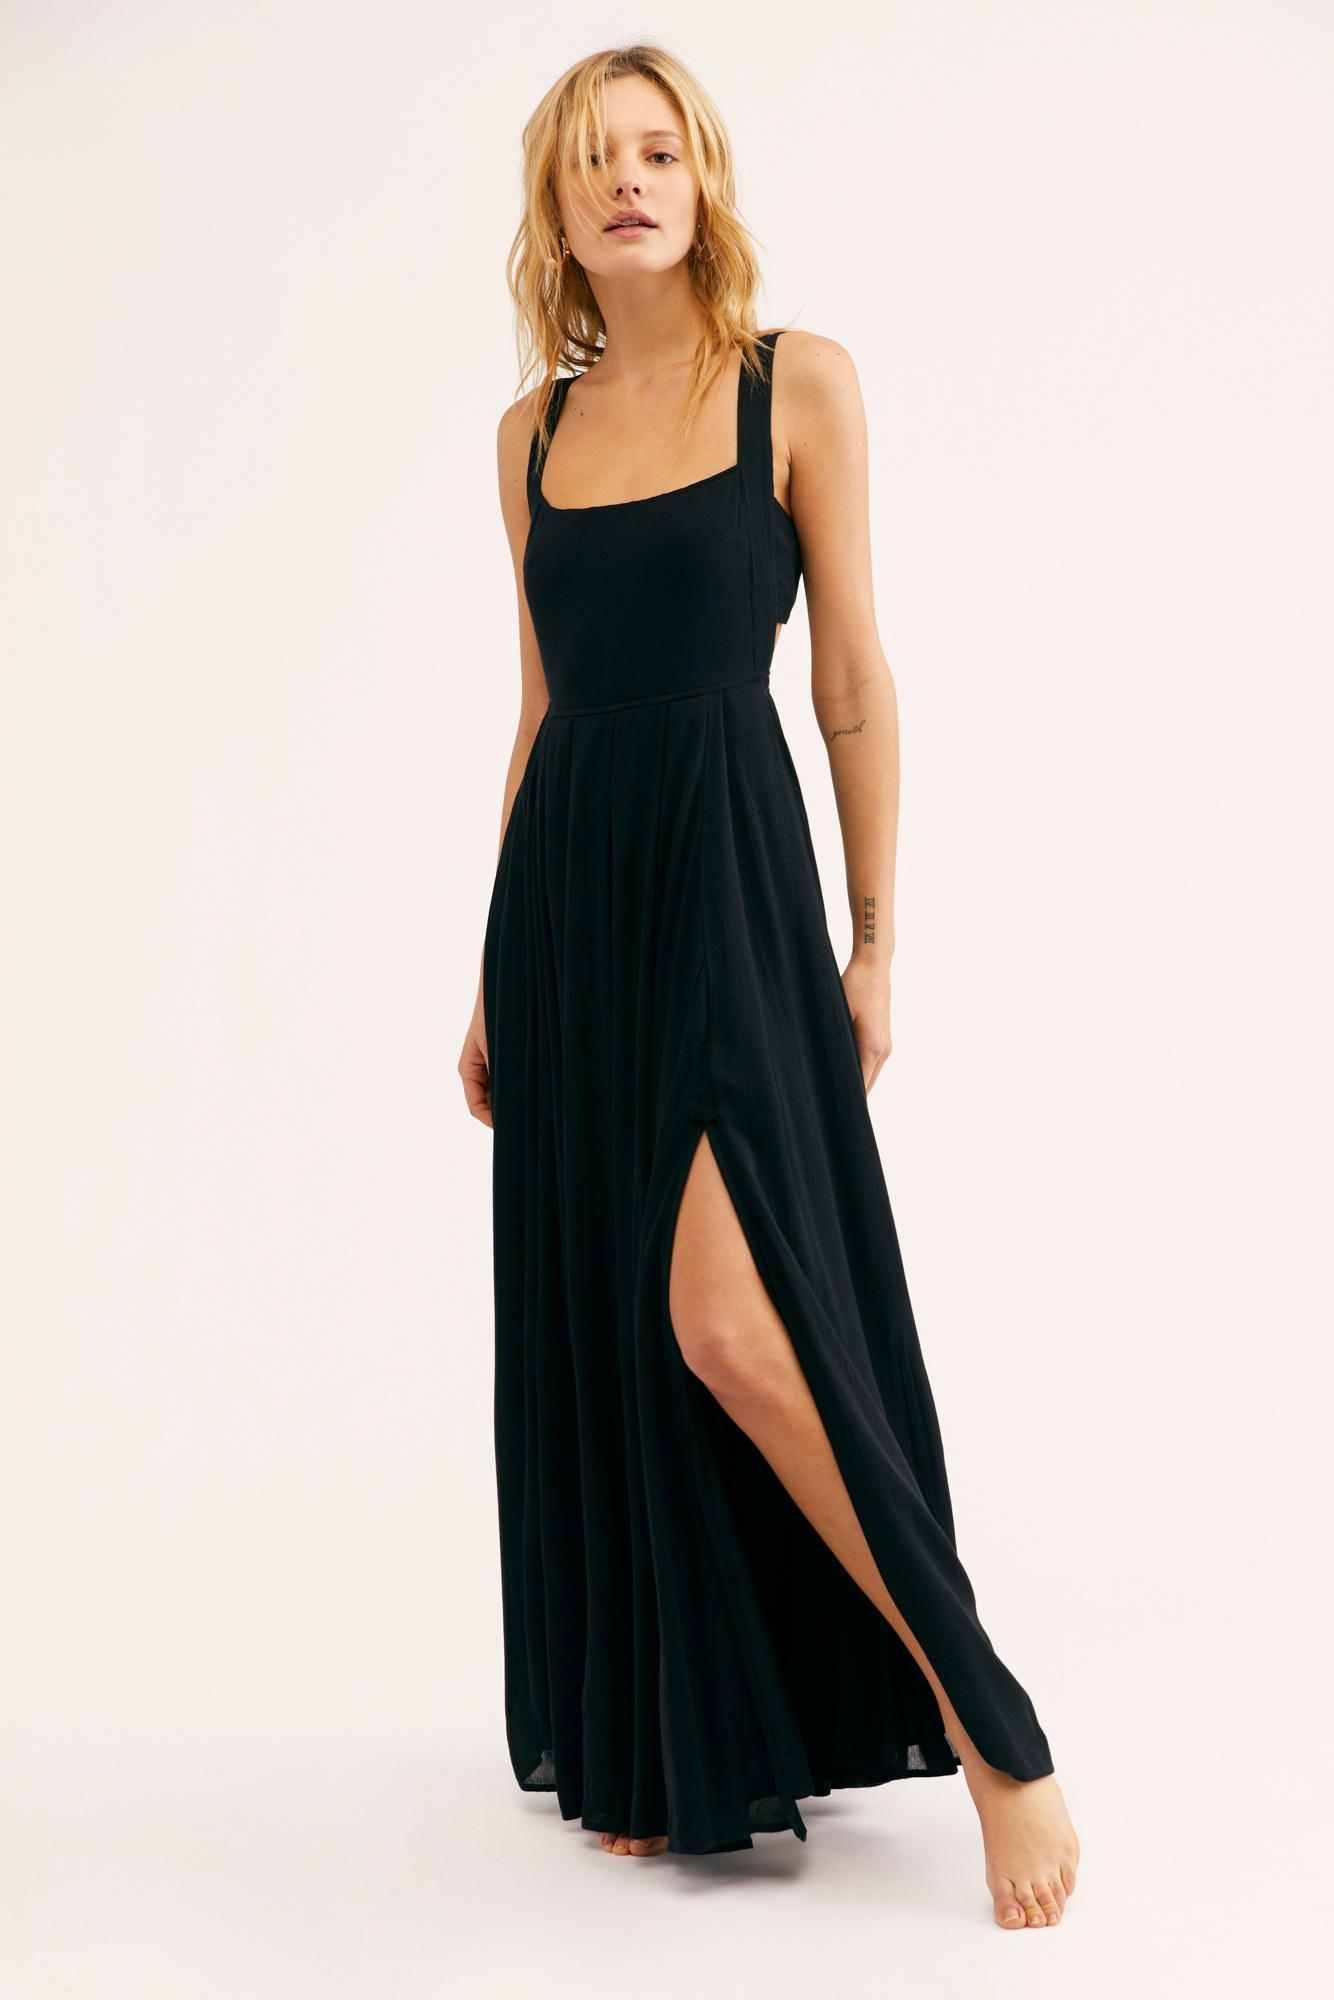 bda9a5a2b65 Lyst - Free People Yes Please Maxi Dress By Endless Summer in Black